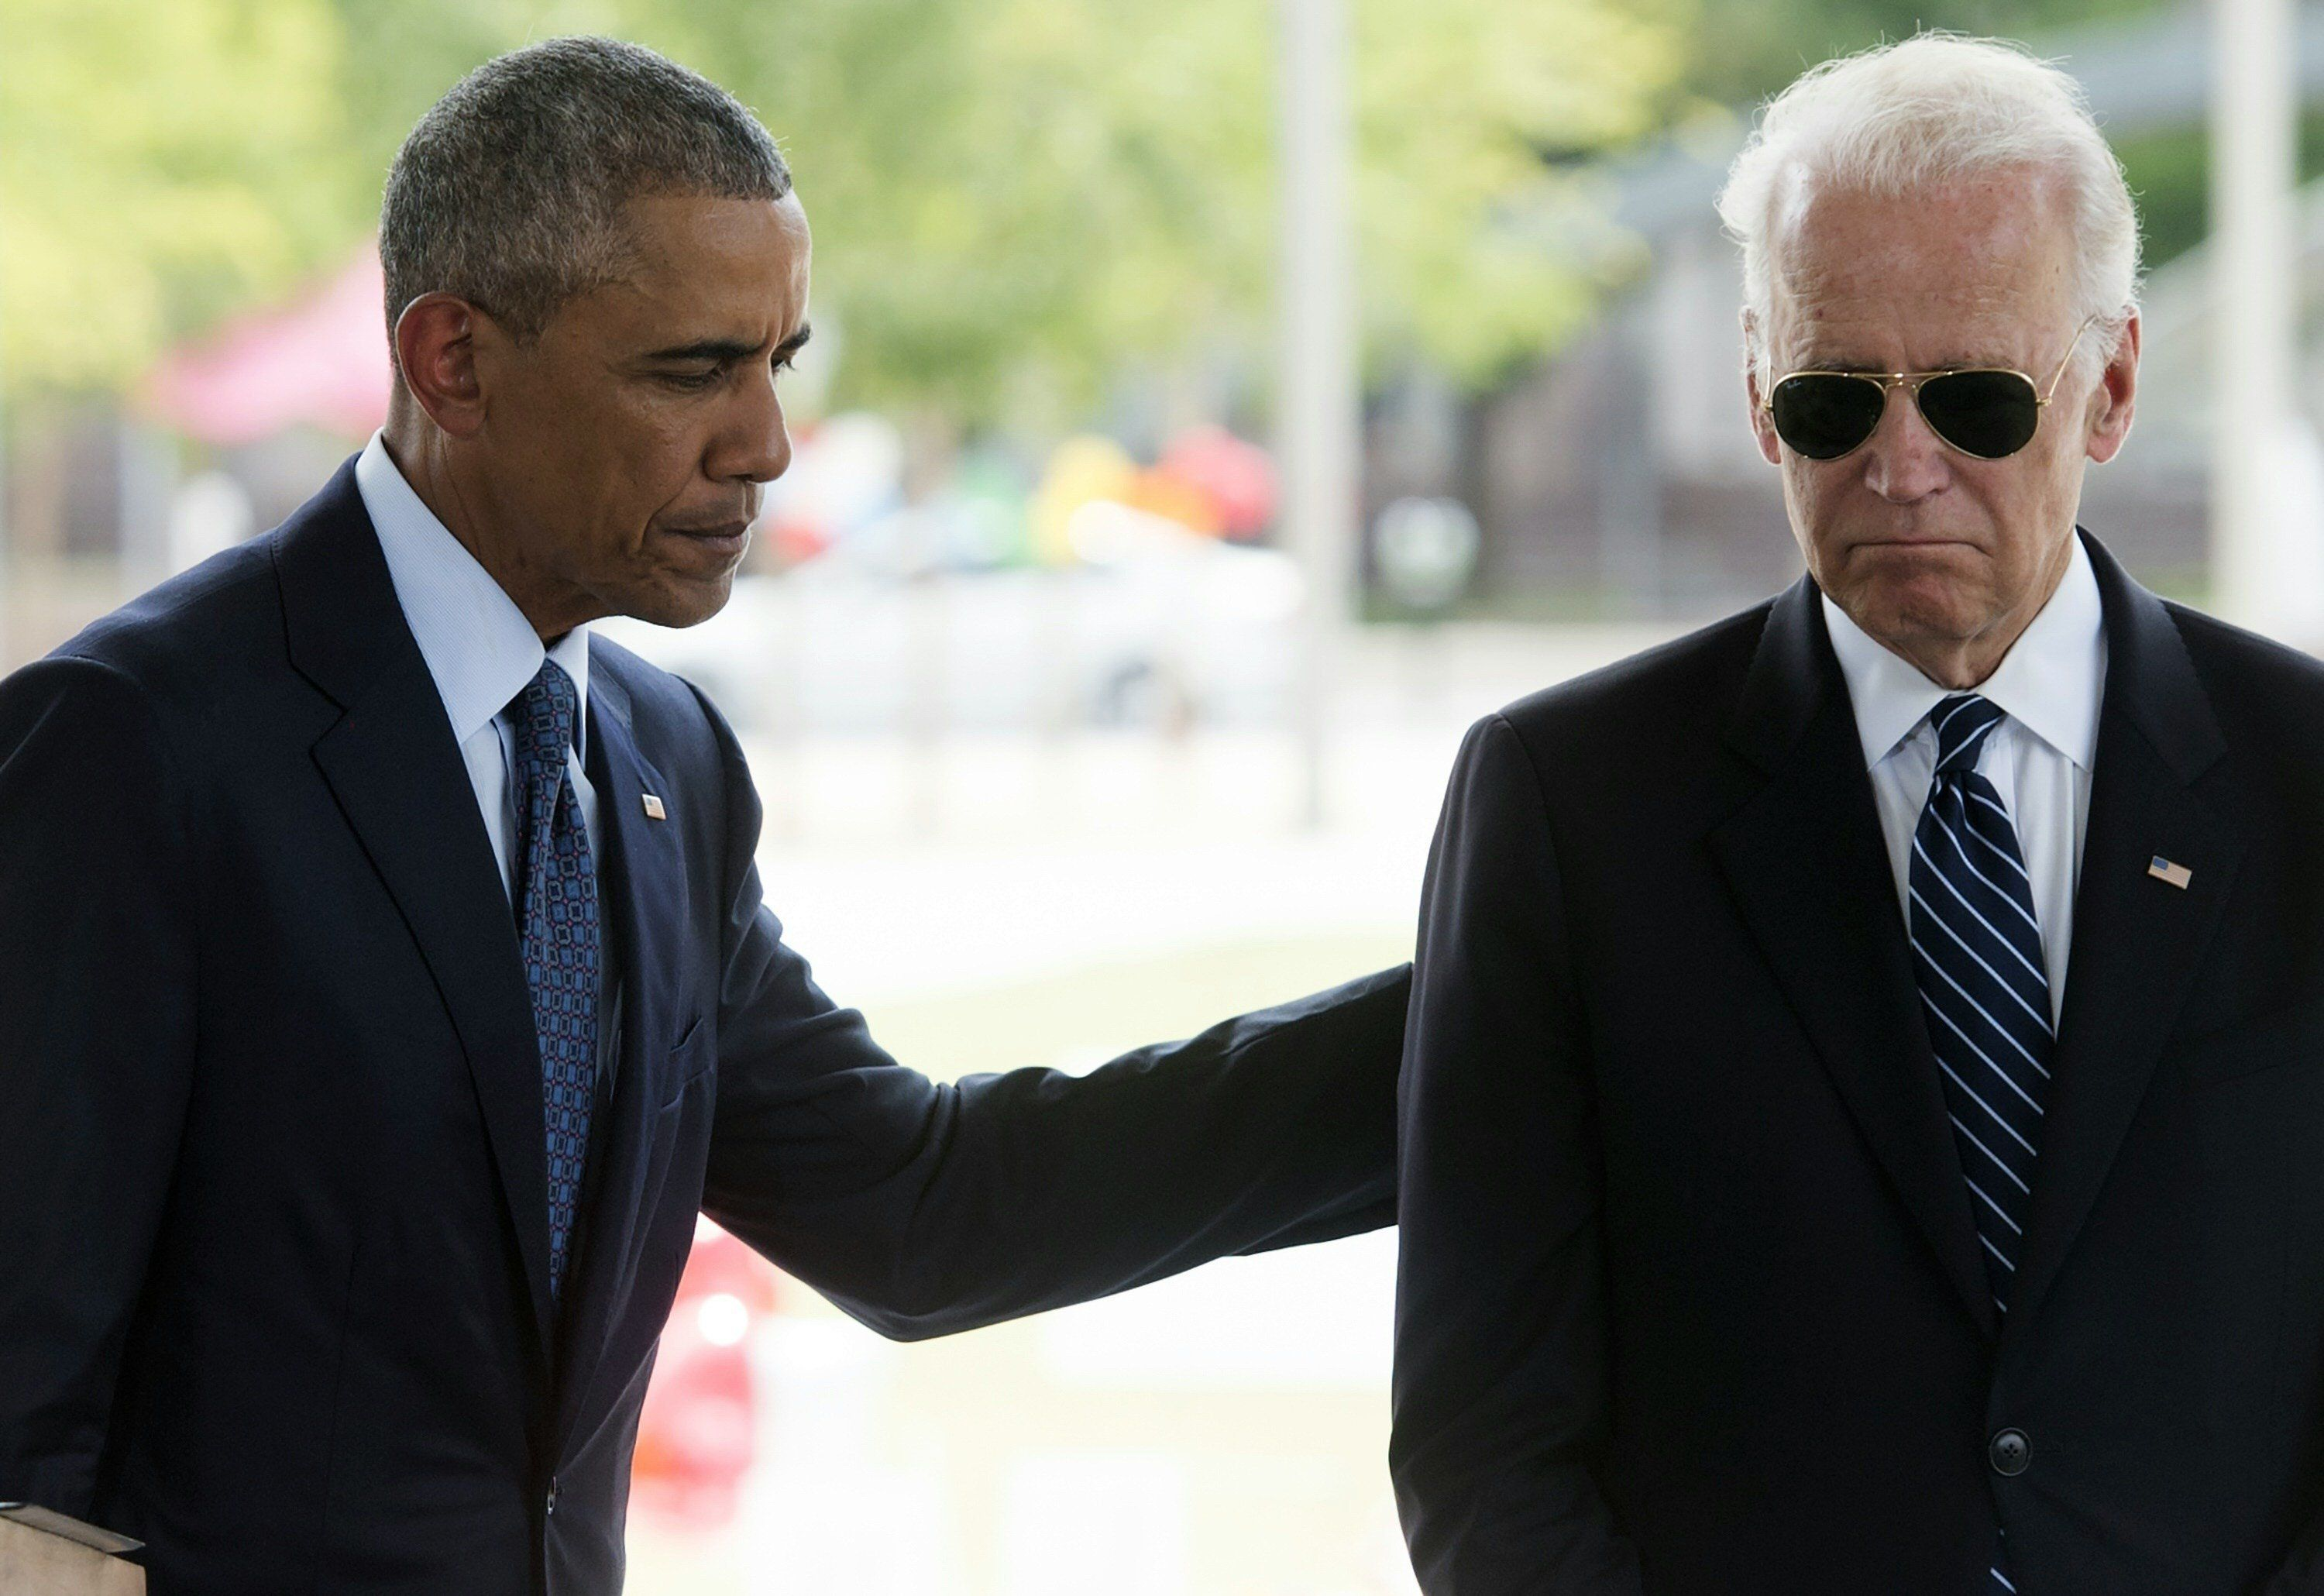 US President Barack Obama speaks alongside Vice President Joe Biden after placing flowers for the victims of the mass shooting at a gay nightclub Sunday at a memorial at the Dr. Phillips Center for the Performing Arts in Orlando, Florida, June 16, 2016. / AFP / SAUL LOEB        (Photo credit should read SAUL LOEB/AFP/Getty Images)